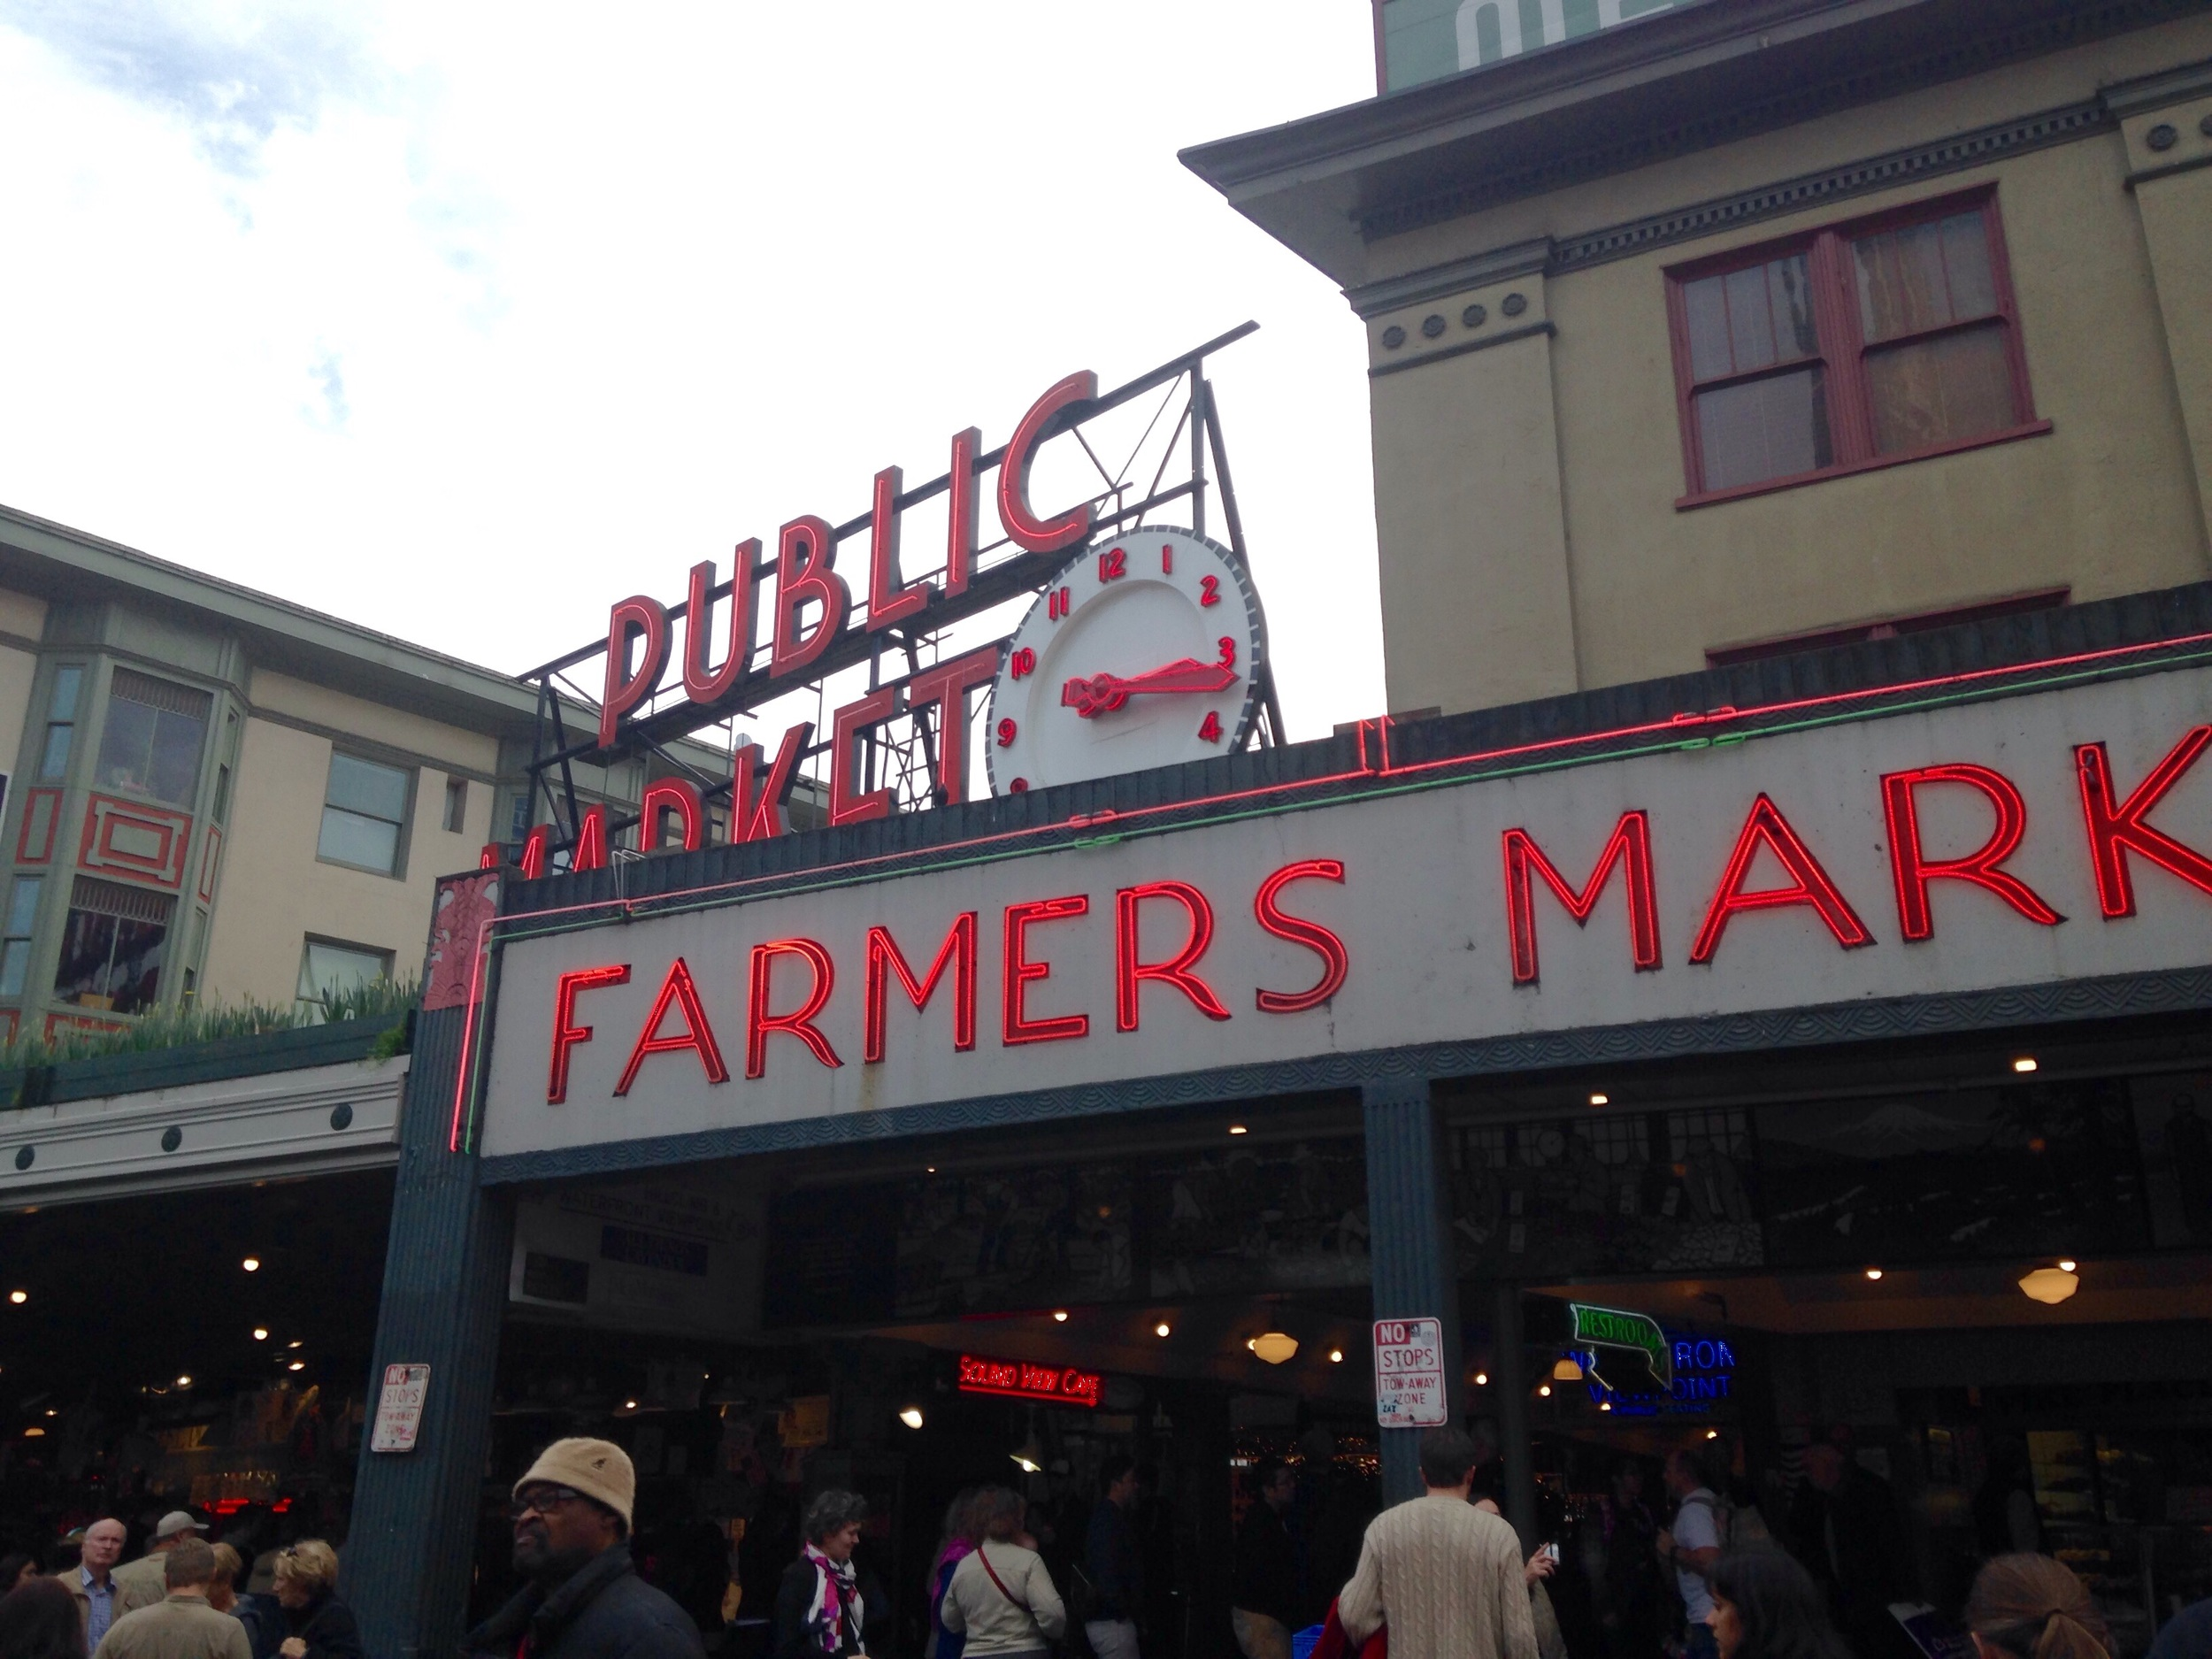 Hello Pike's Place! This is my favorite place now!